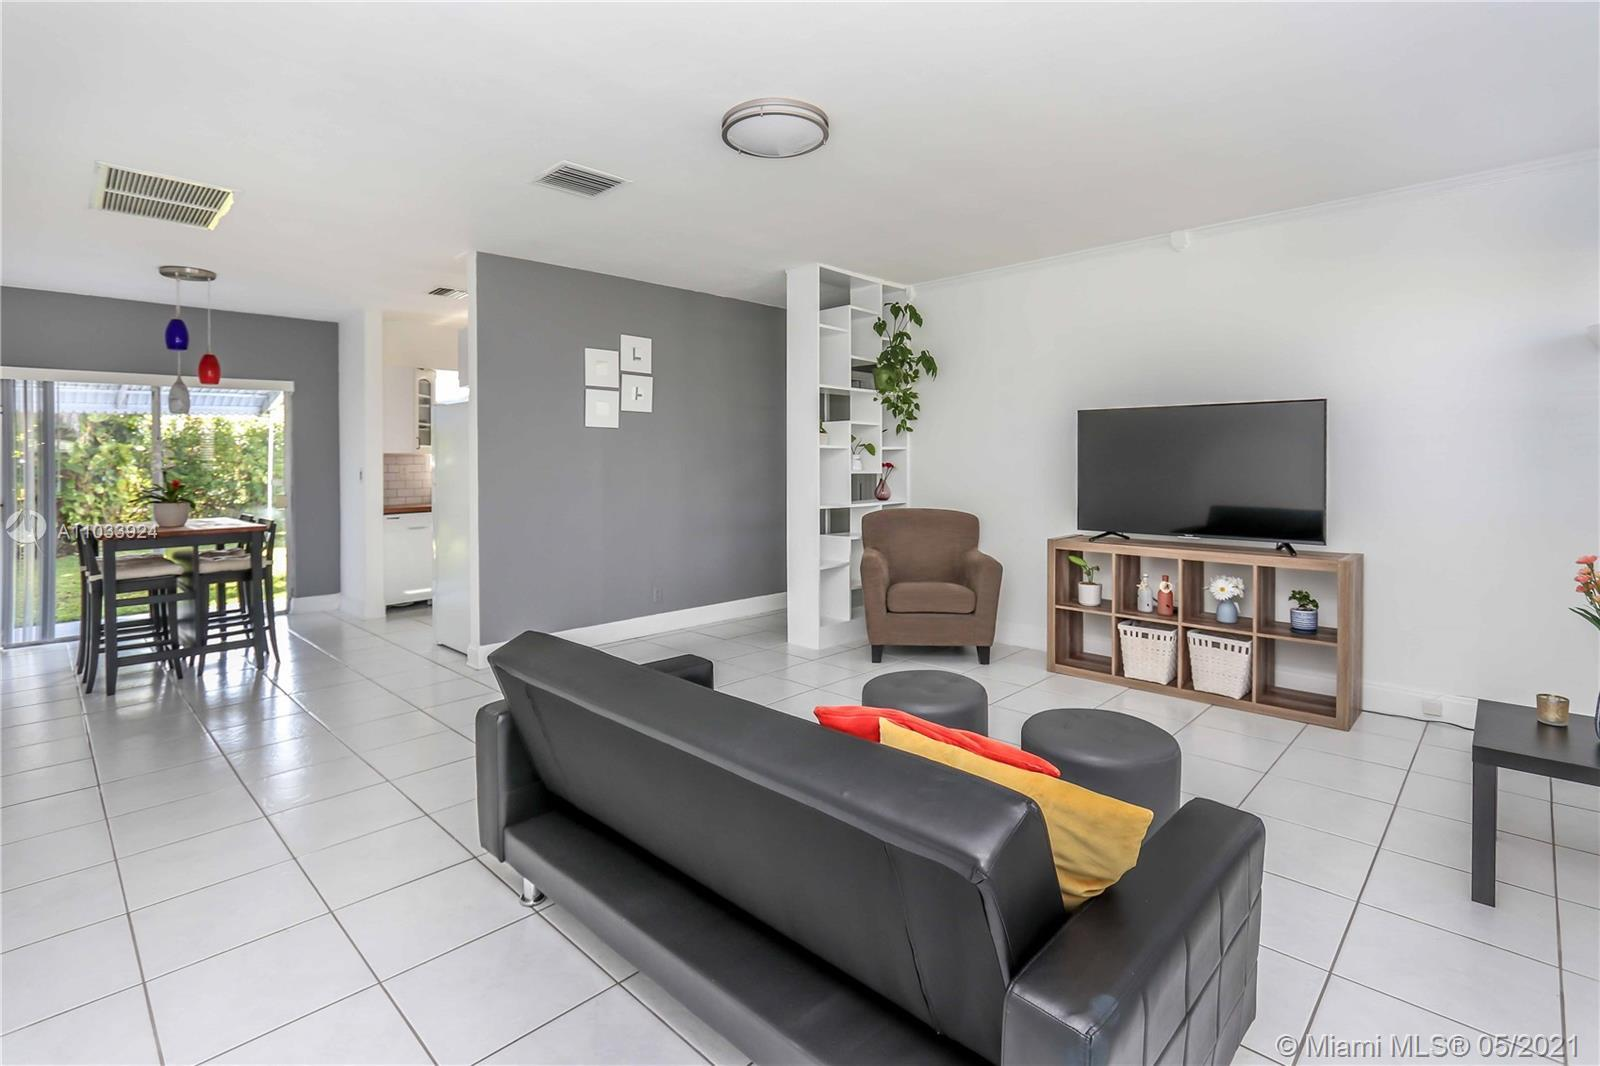 Spacious and Bright 2 bed. 1 bath. with 1 car garage home in the Hollywood Lakes area! This house fe